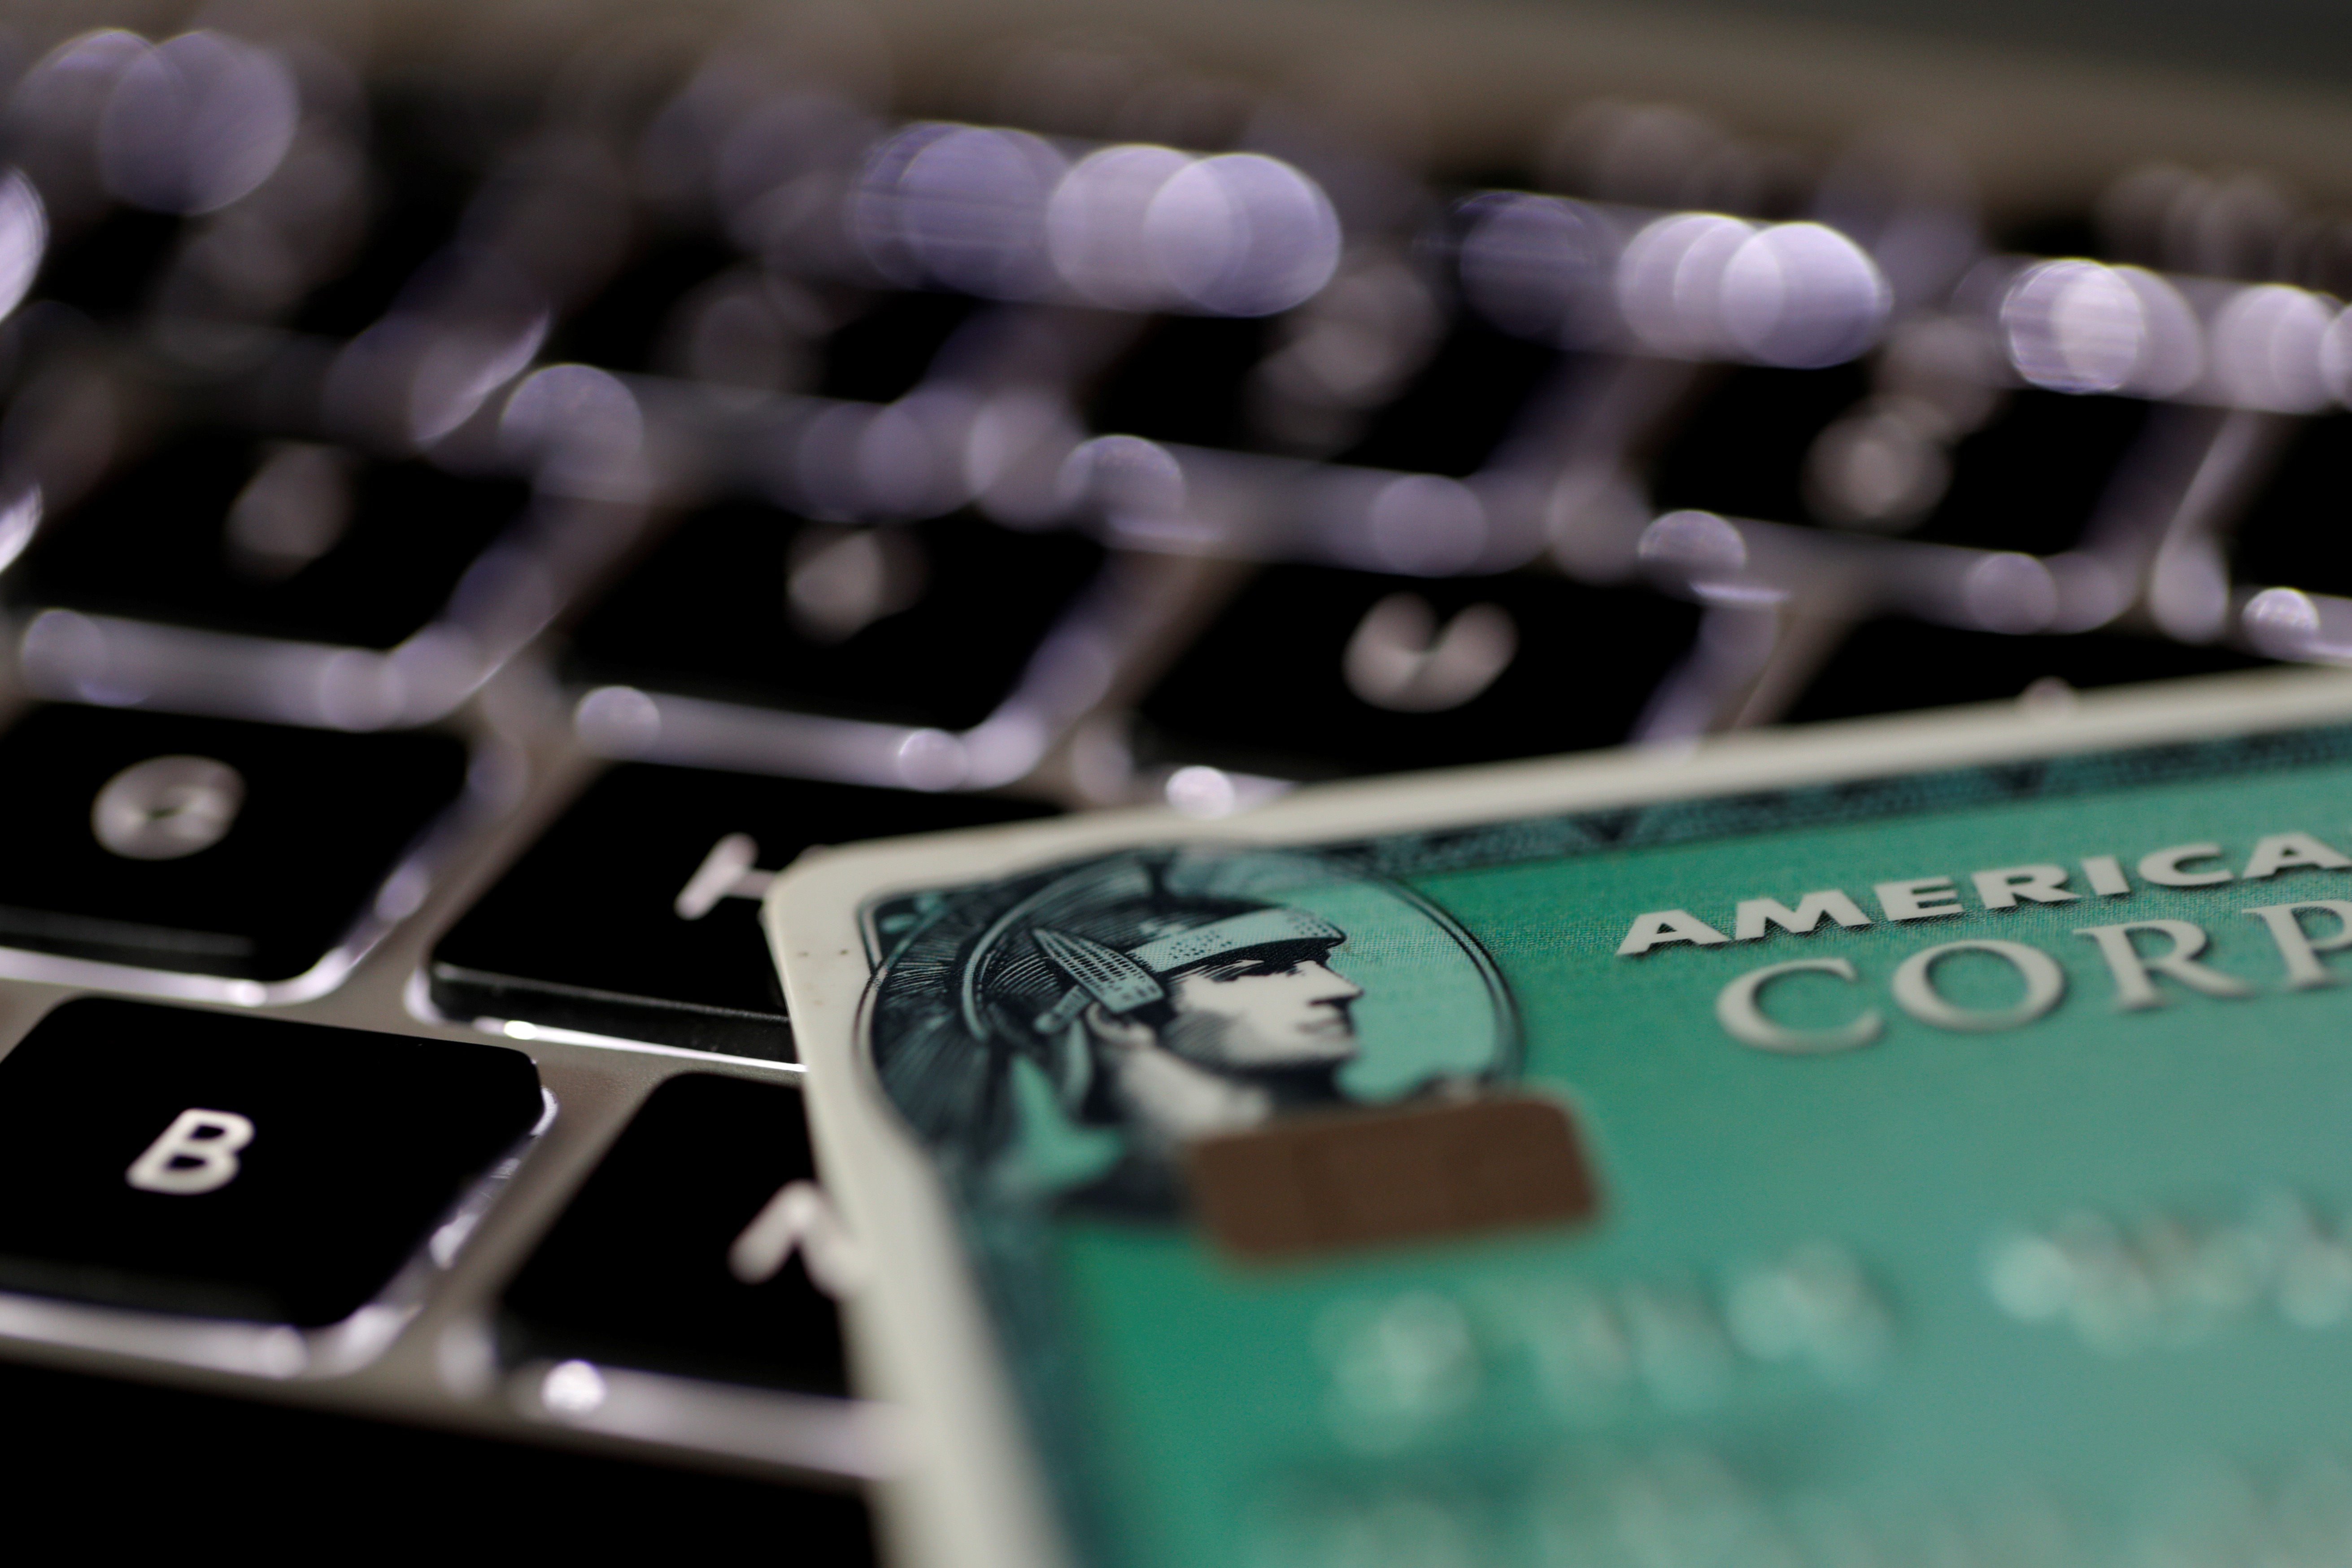 Credit denial in the age of AI